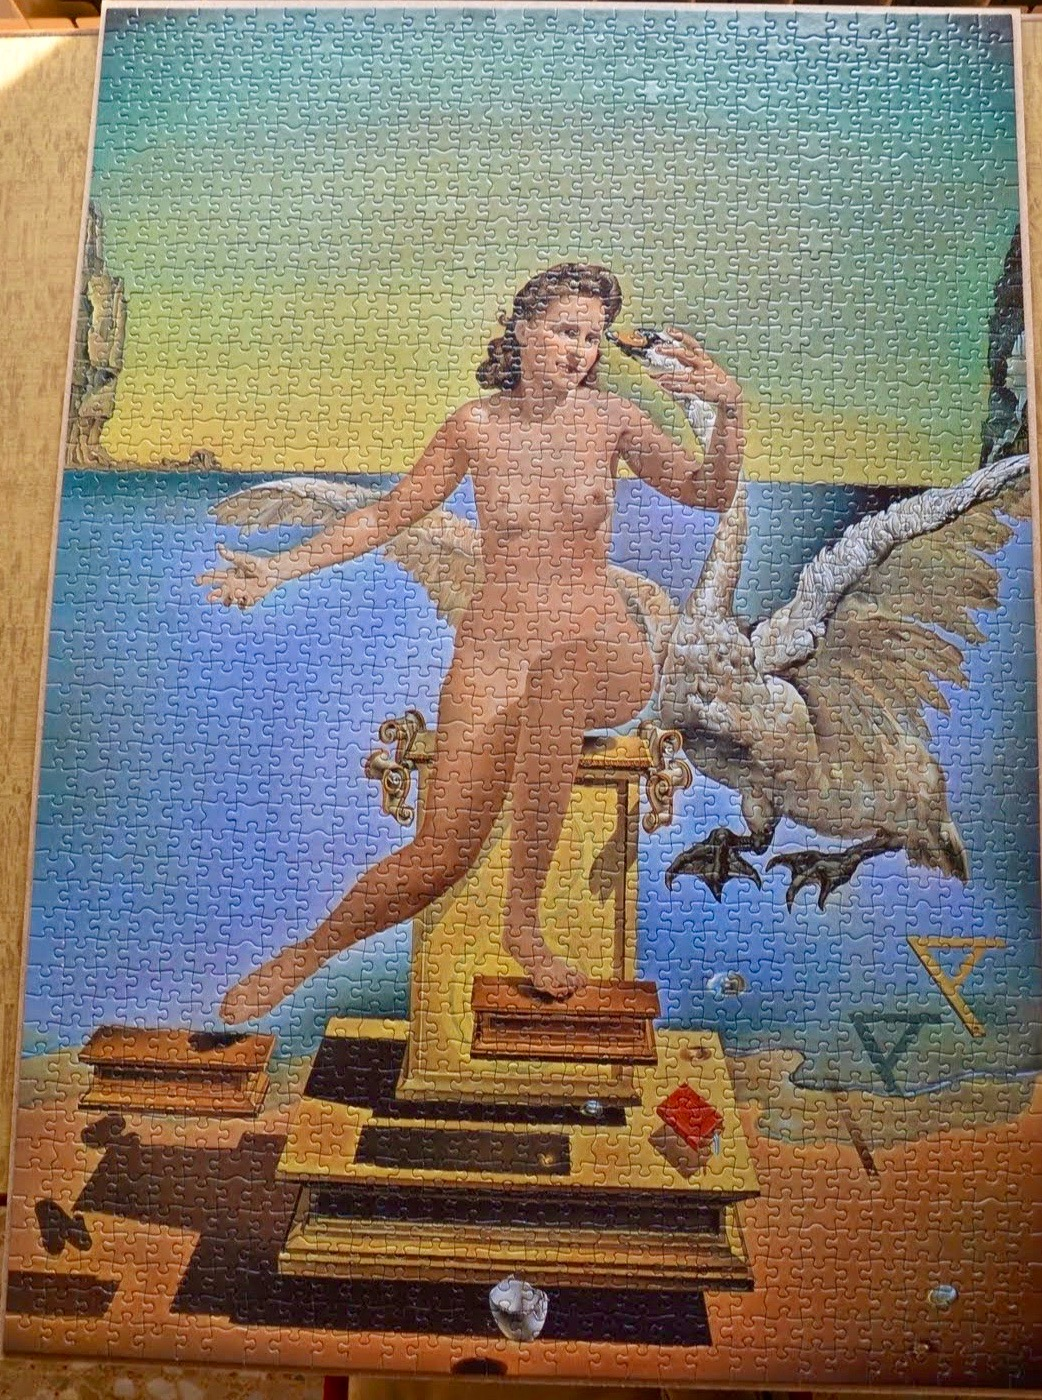 Image of the puzzle 1500, Educa, Leda Atomica, by Salvador Dalí, Blog Post